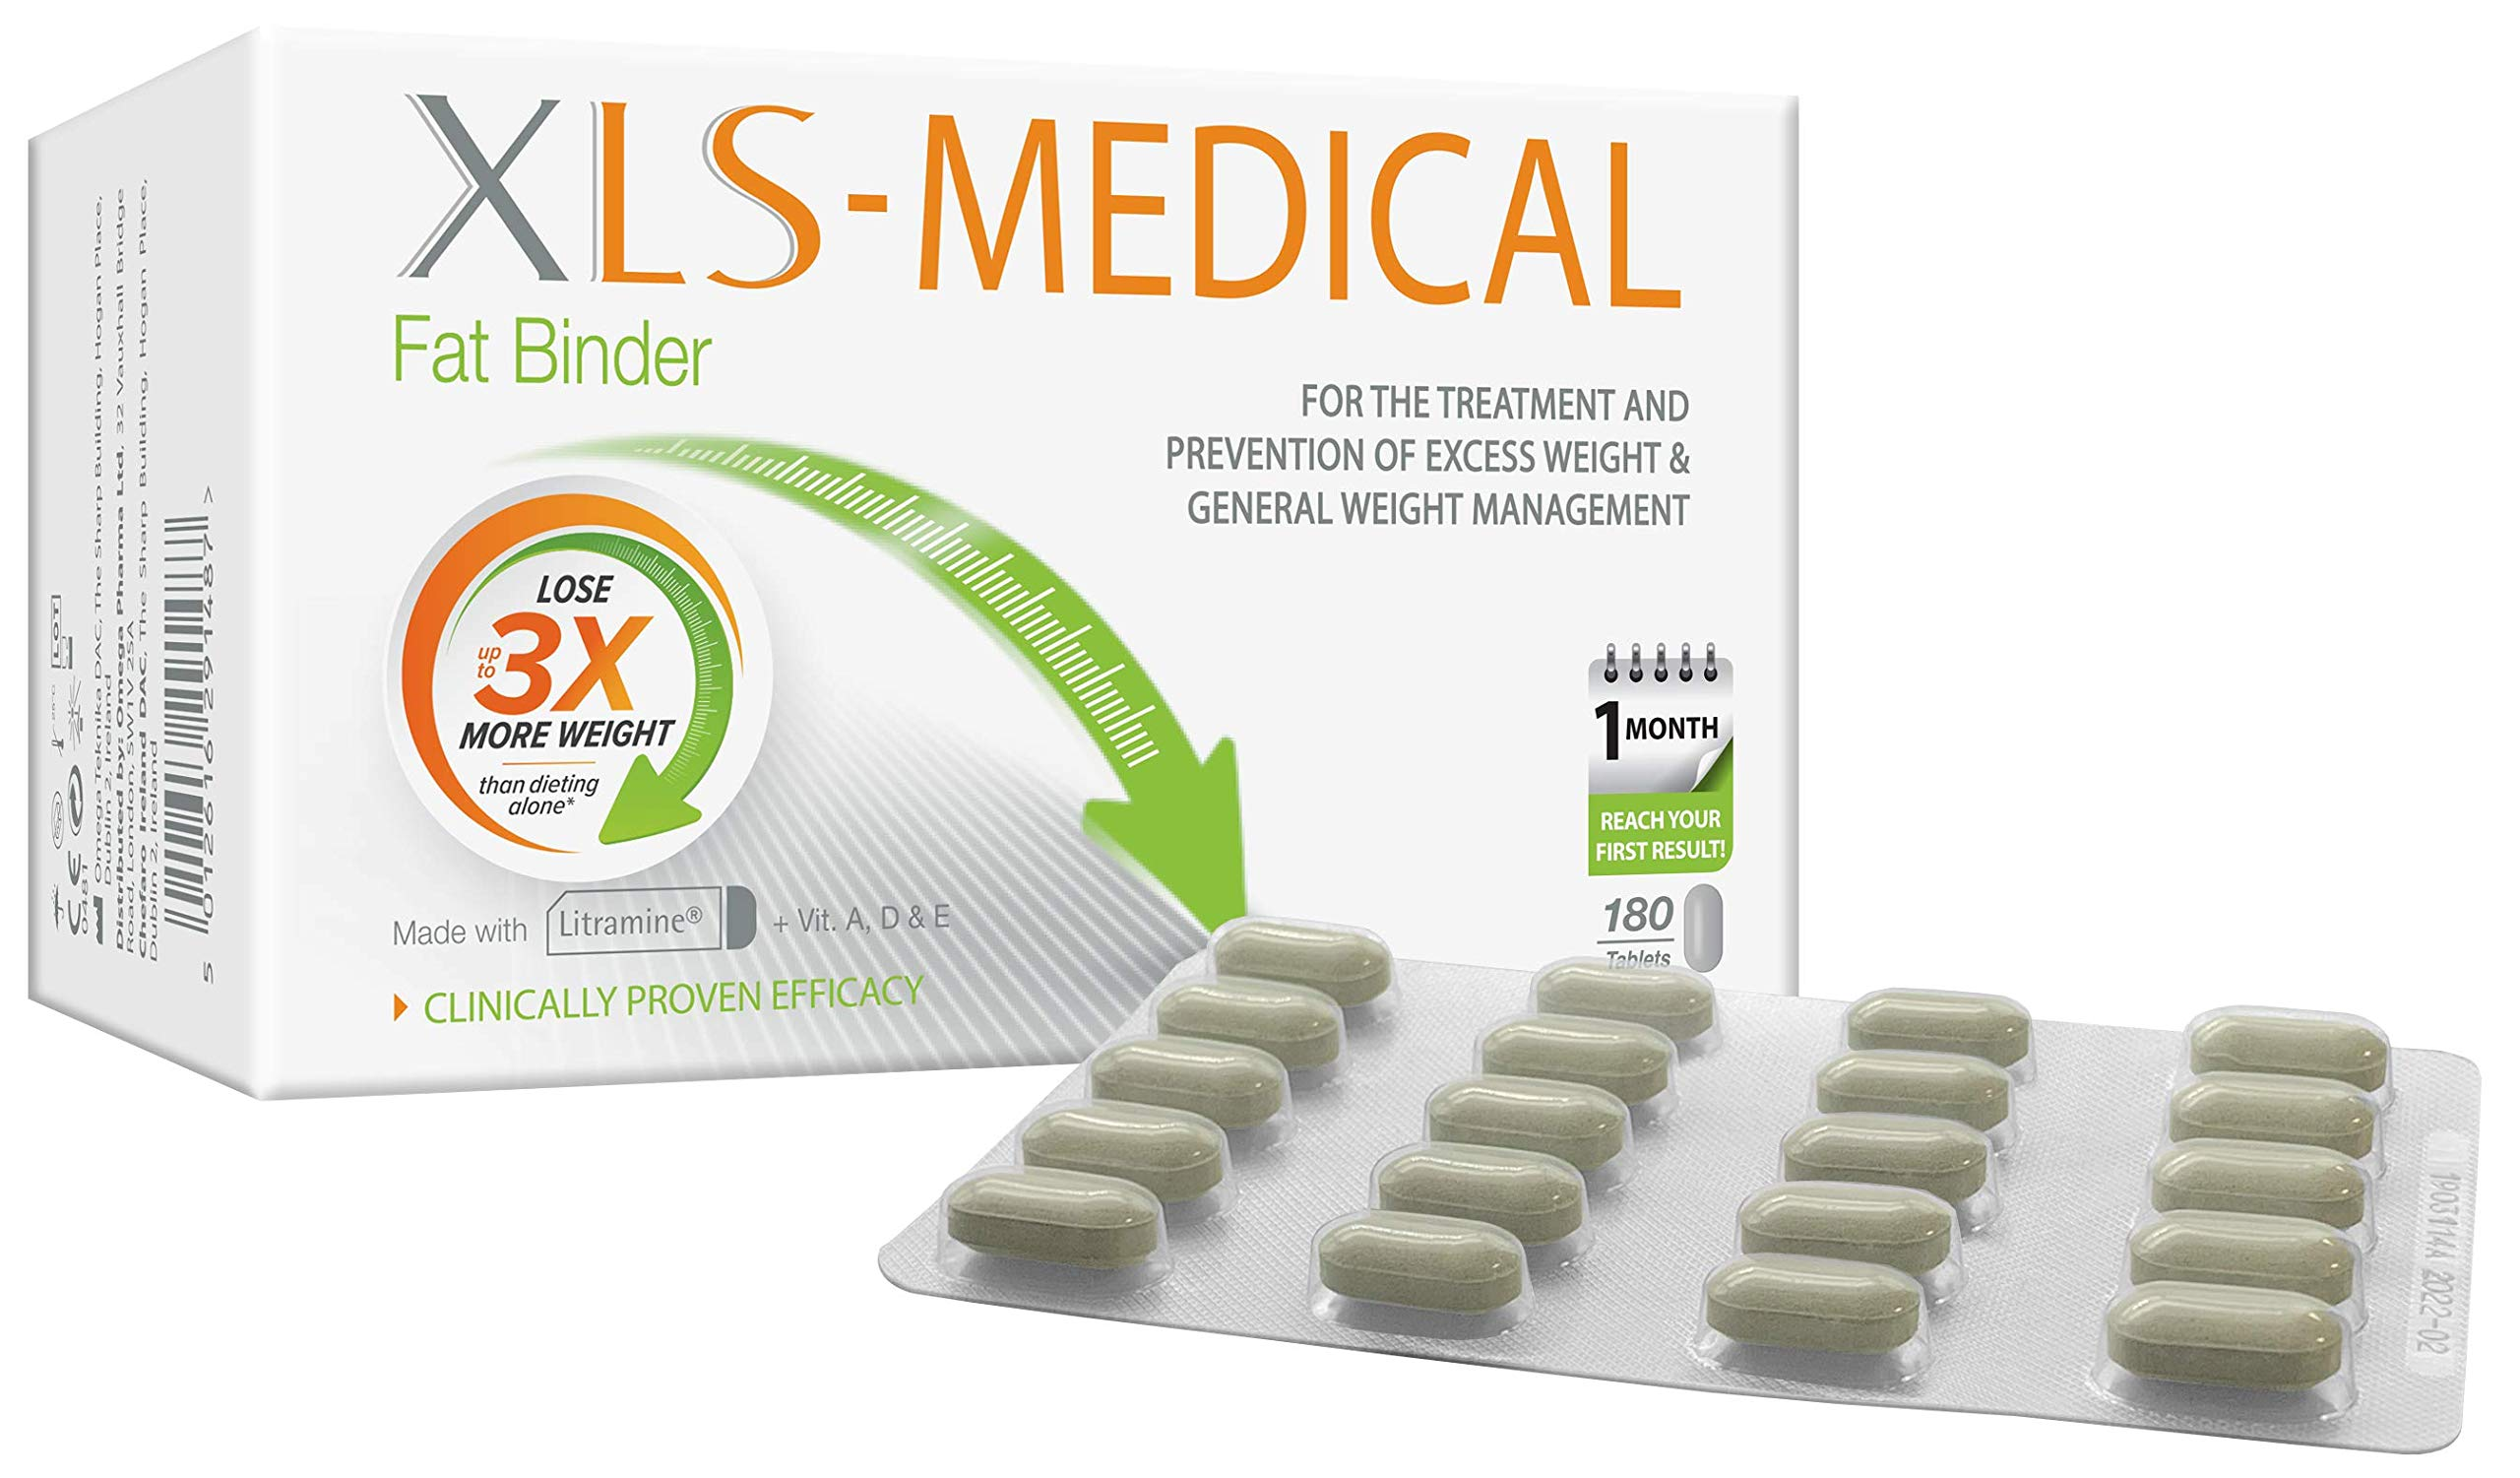 XLS Medical Fat Binder - Effective Weight Loss Aid to Reduce Calorie Intake - 180 Tablets, 30 Days